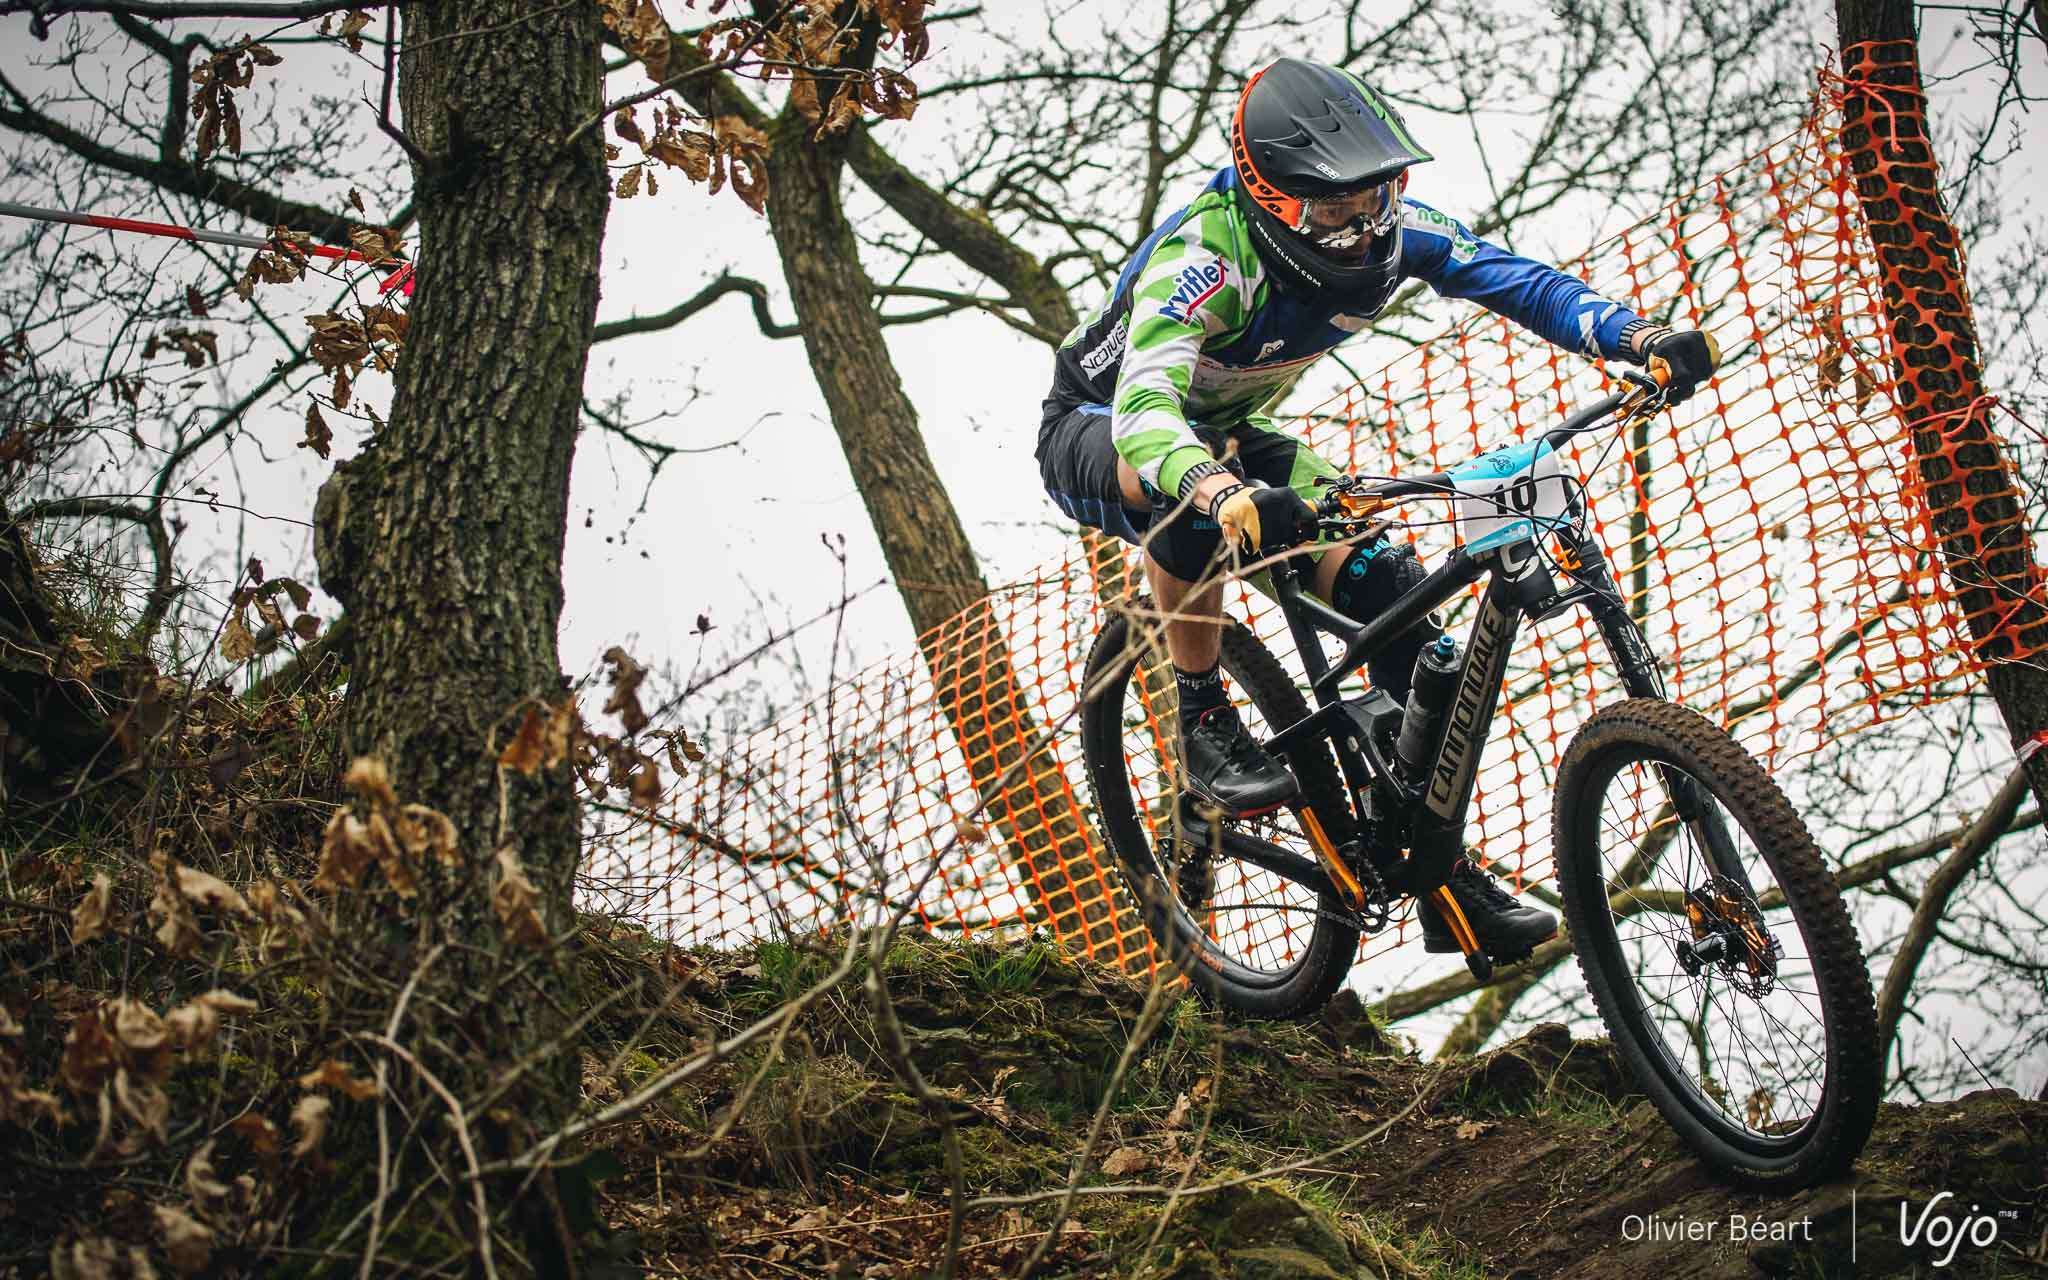 Belgian_Enduro_Cup_Chaudfontaine_2016_Copyright_OBeart_Vojomag-11